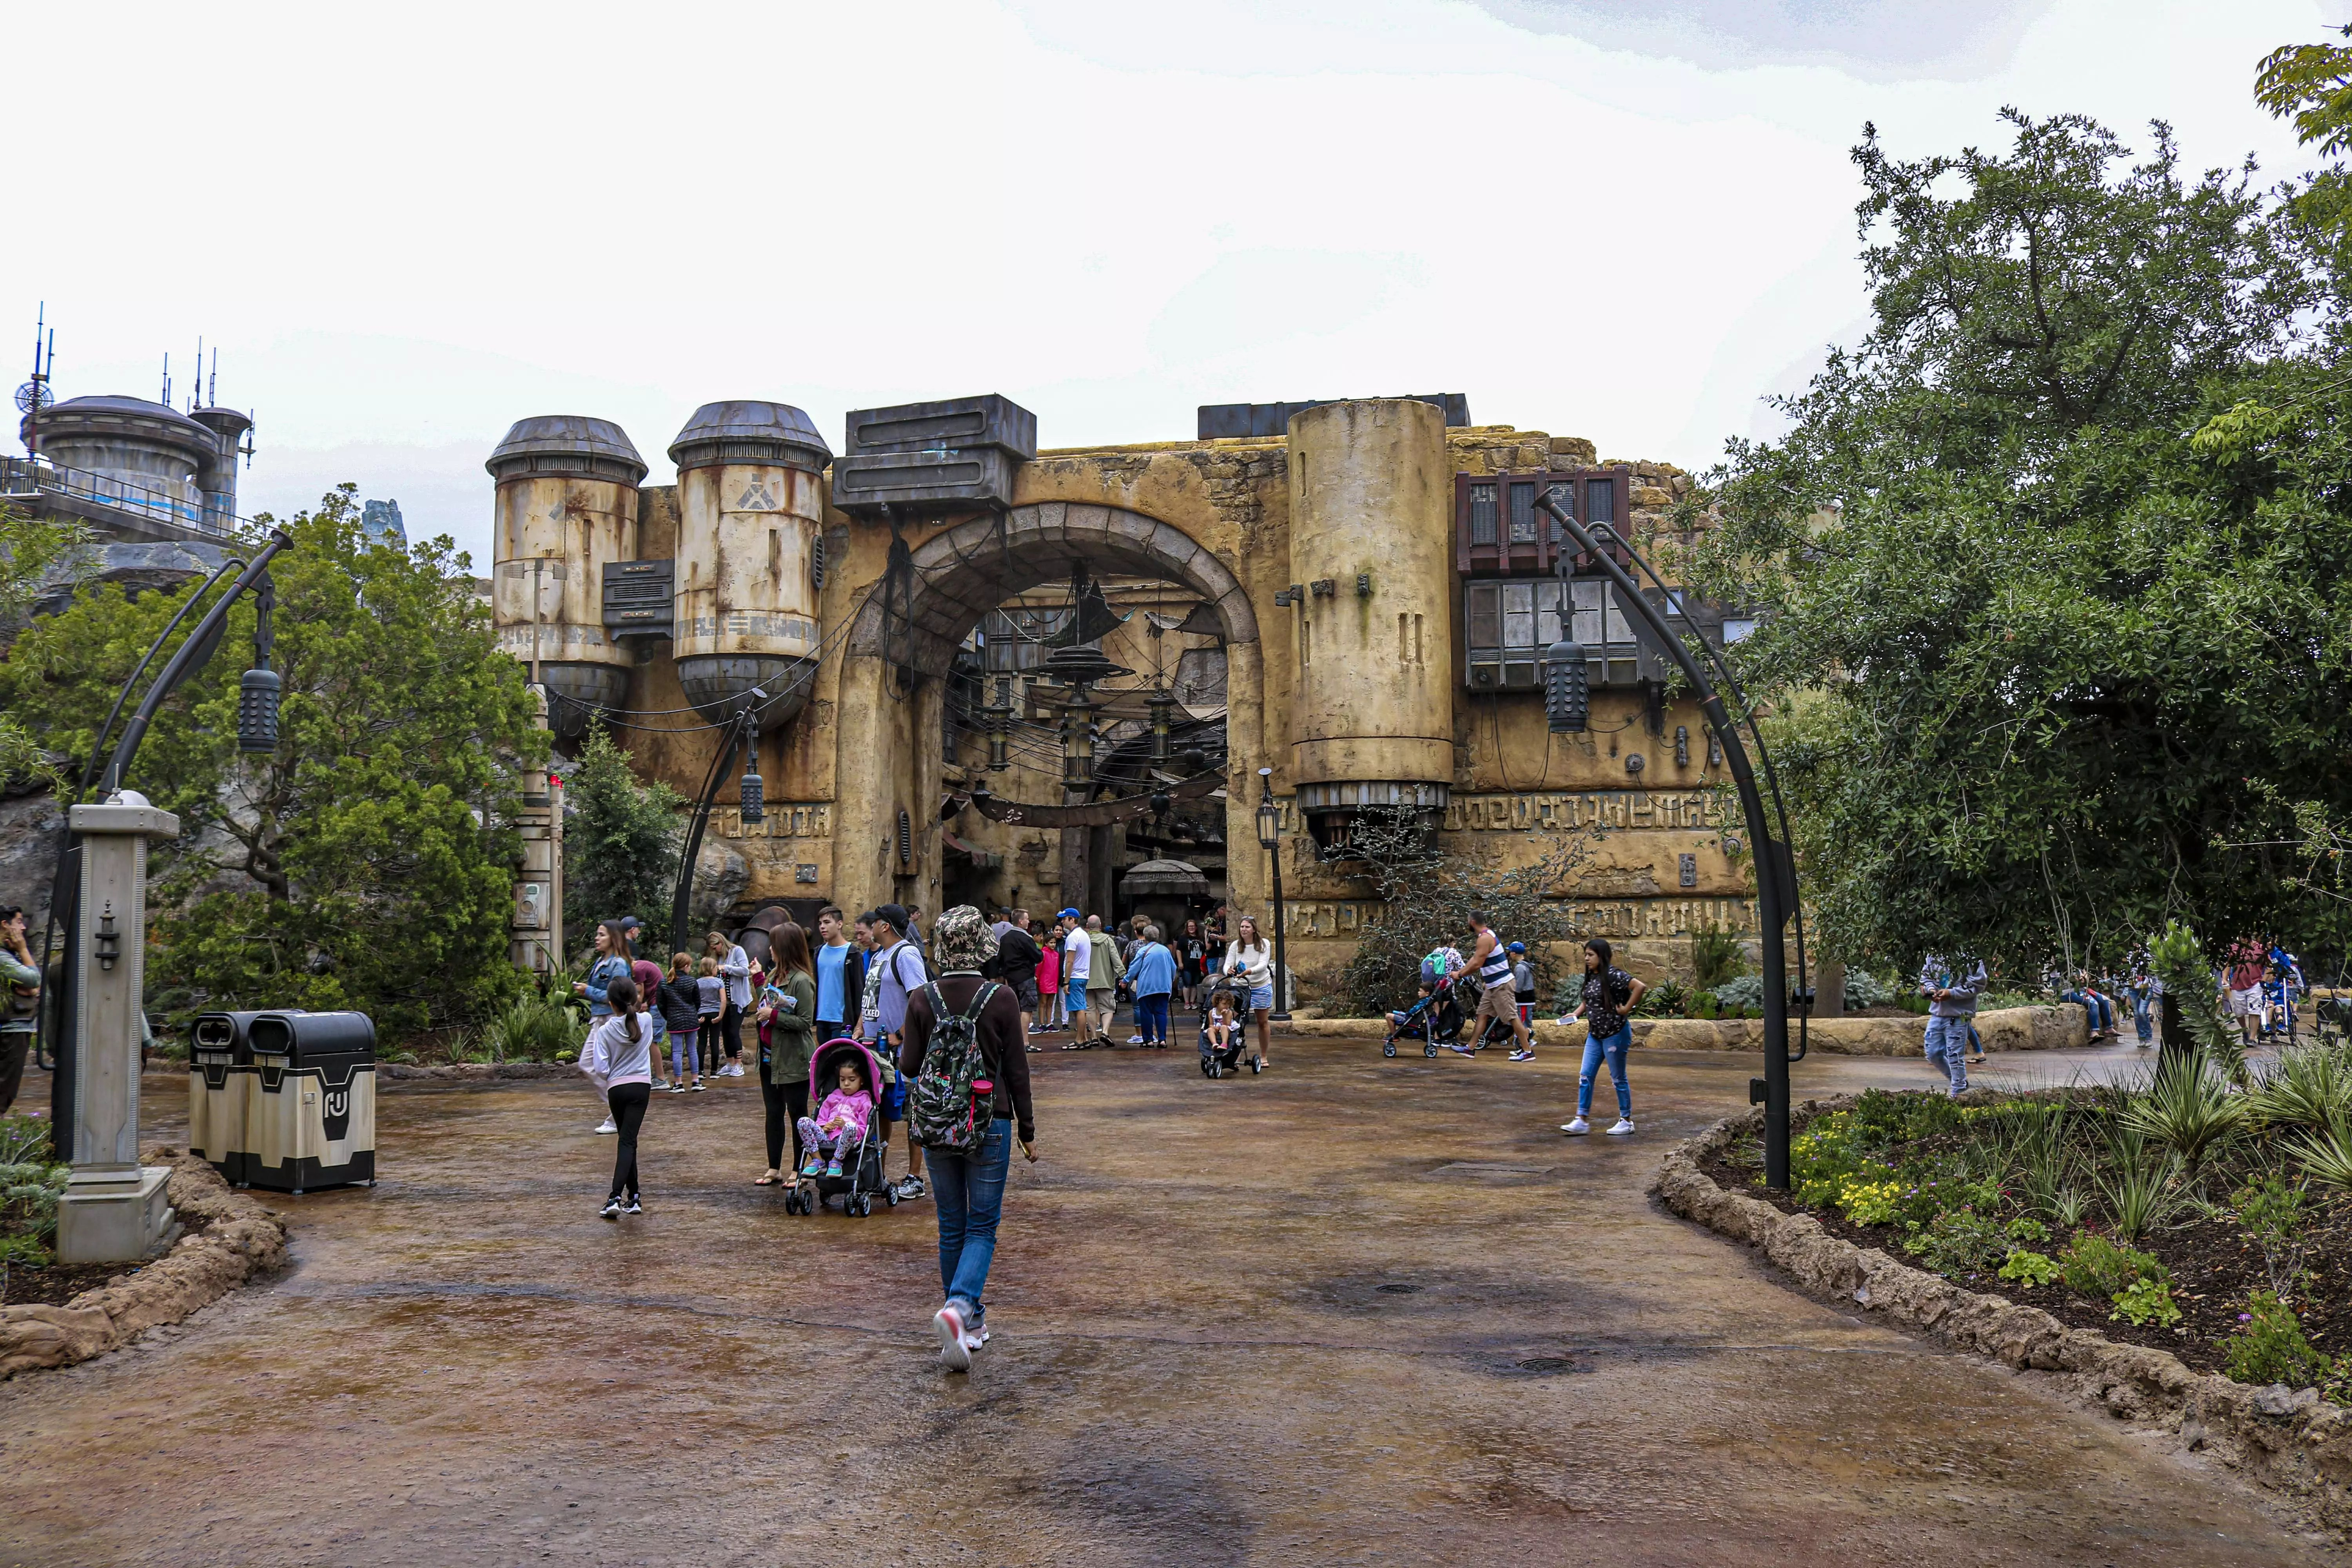 Travelers venture into the stormy day ahead at Star Wars: Galaxy's Edge.